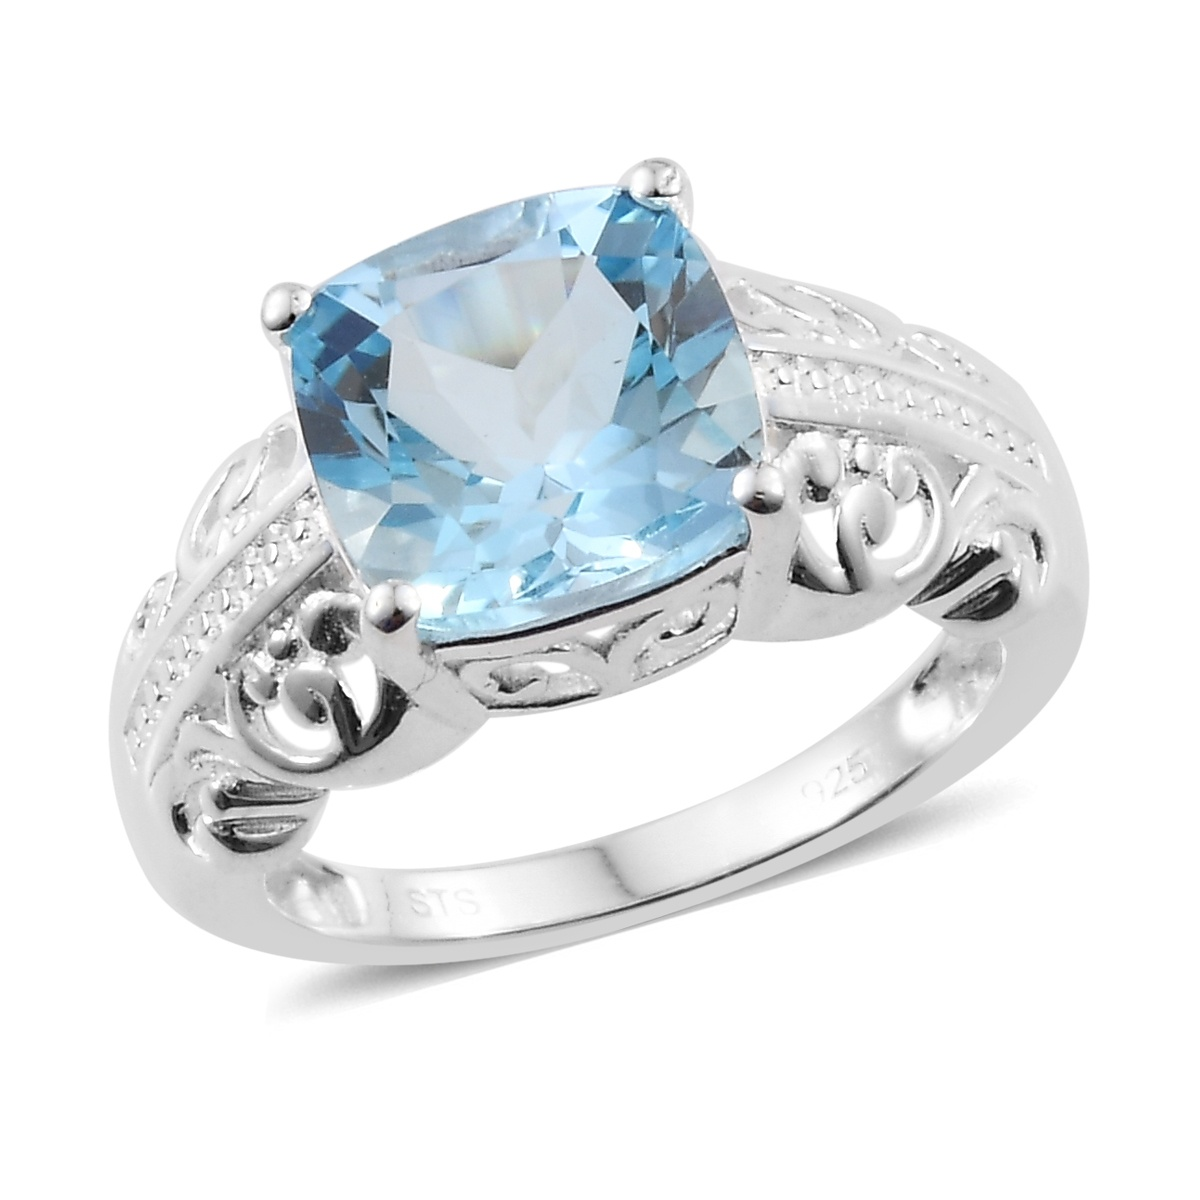 Solitaire Ring 925 Sterling Silver Cushion Sky Blue Topaz Jewelry for Women Size 11 Ct 2.3